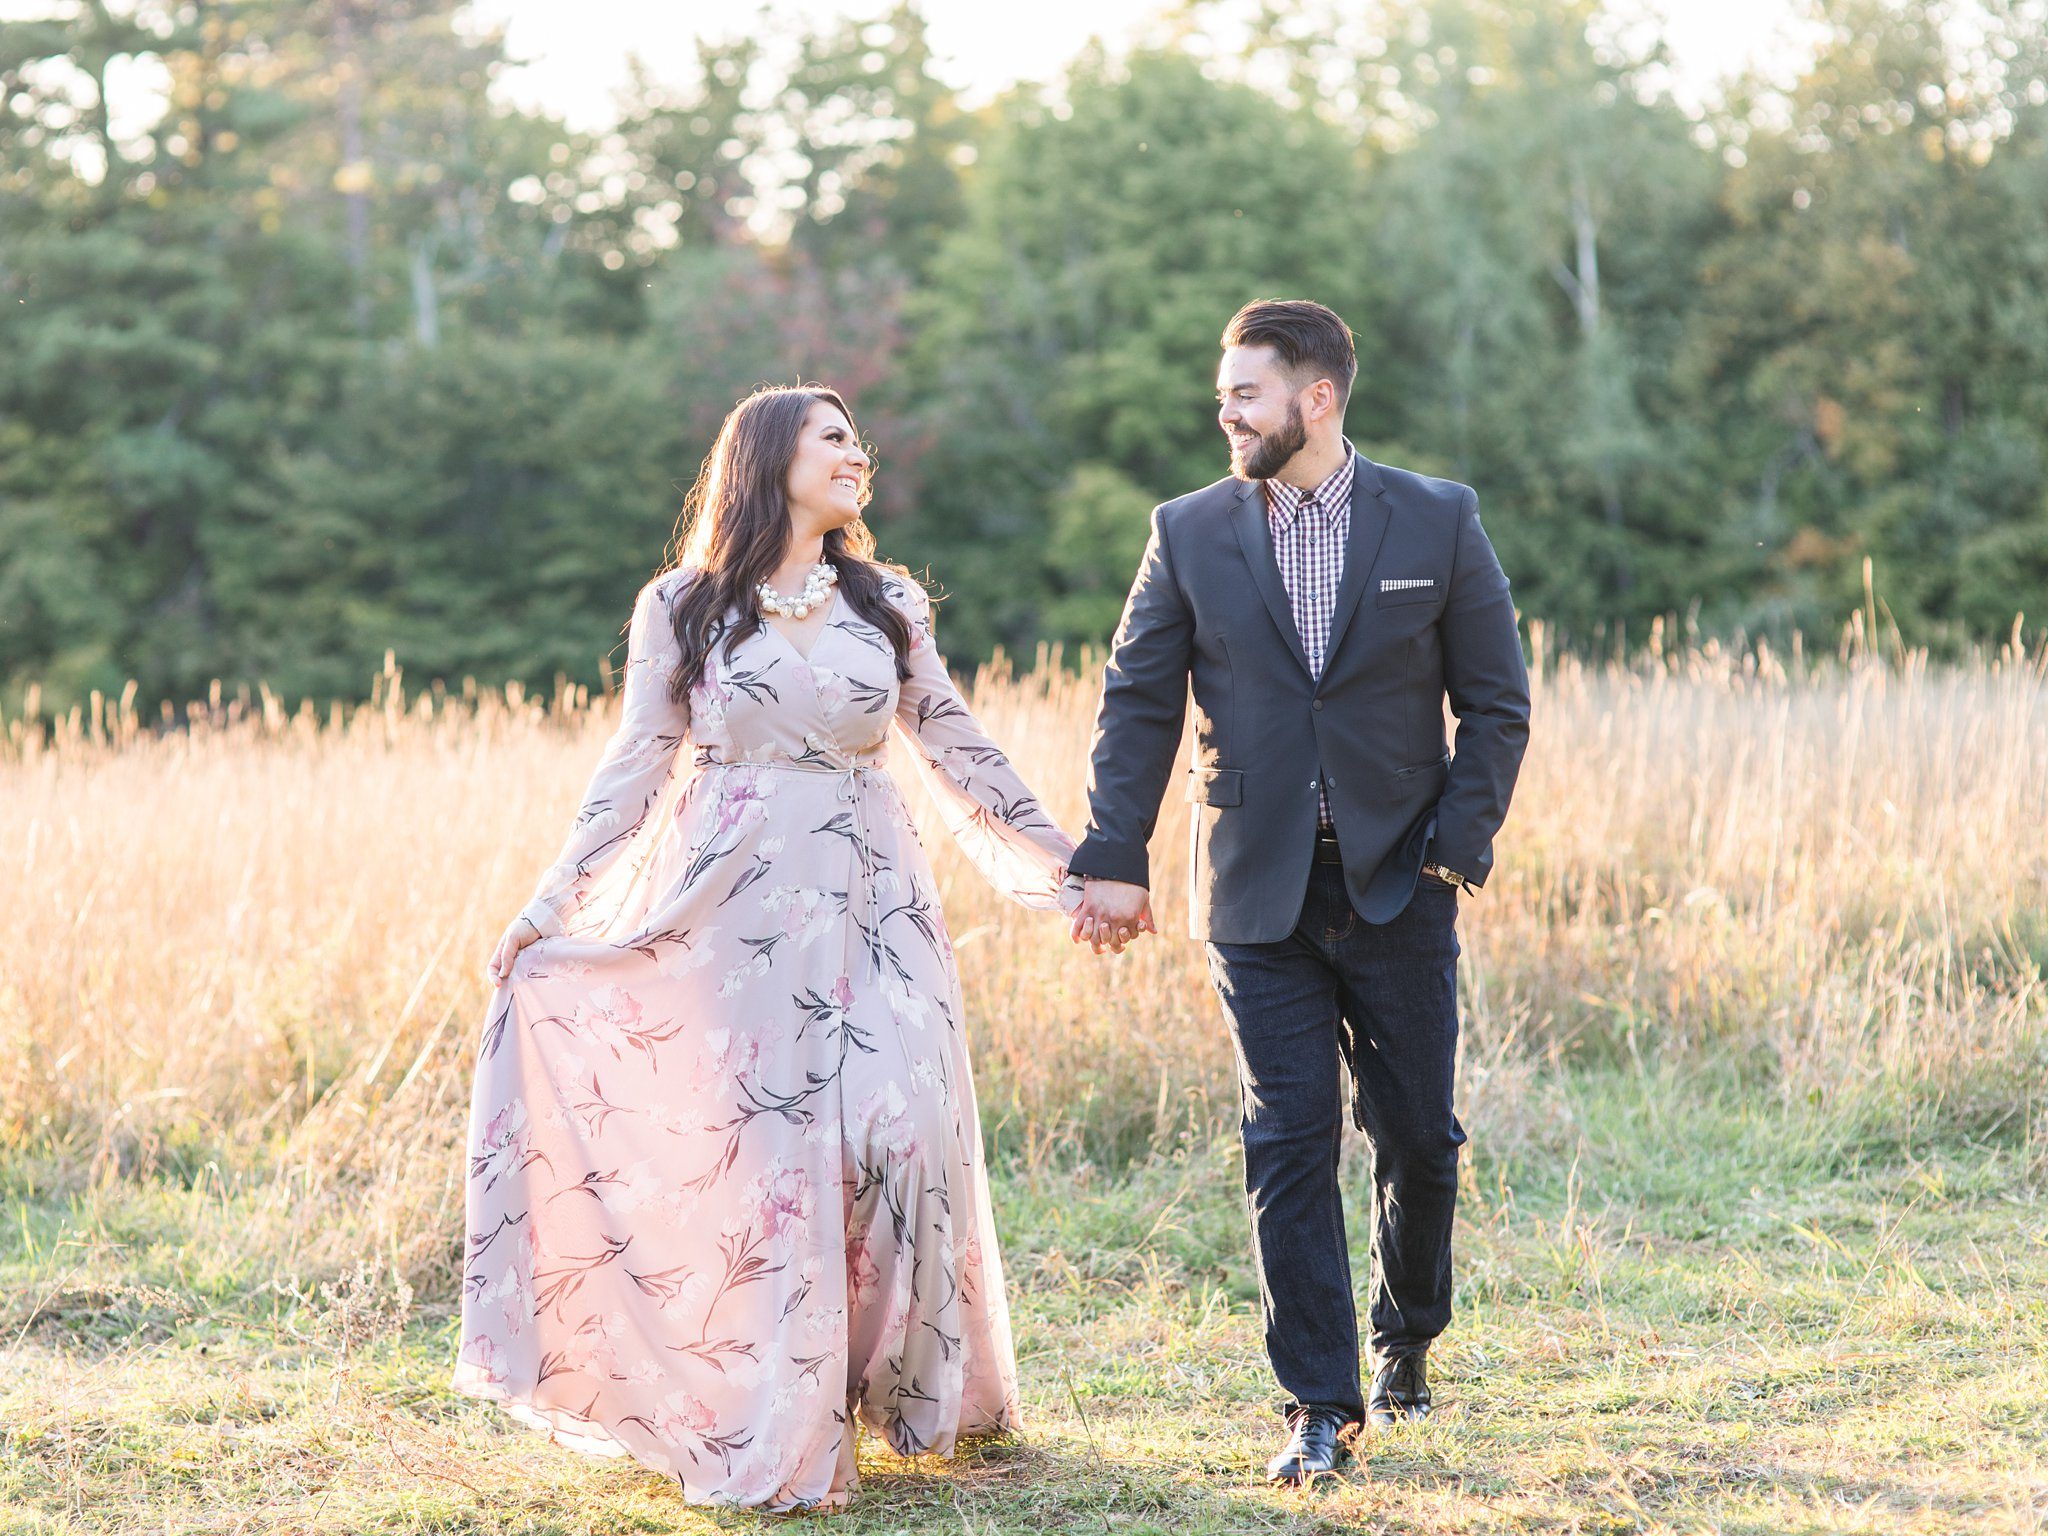 Walking hand in hand at sunset, Mackenzie King Estate Engagement Photos by Amy Pinder Photography